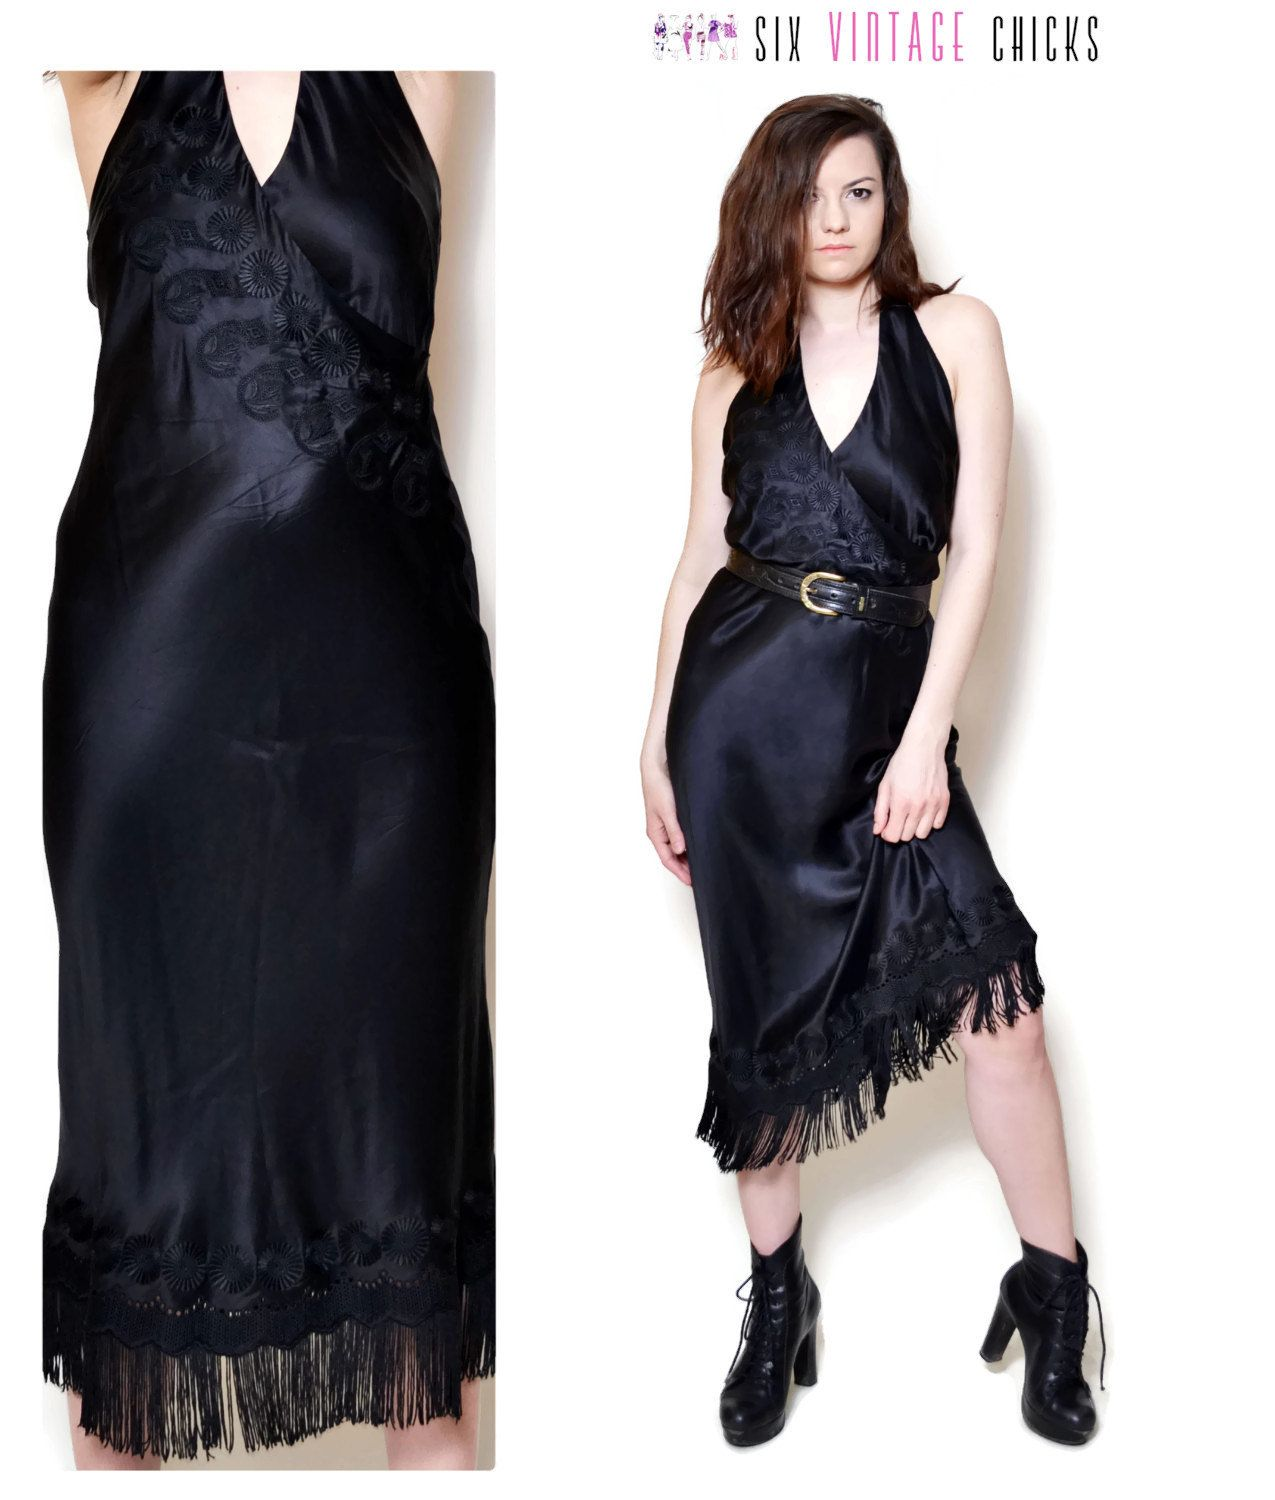 goth dress embroidered 90s prom fringe dresses evening Halter 90s ...